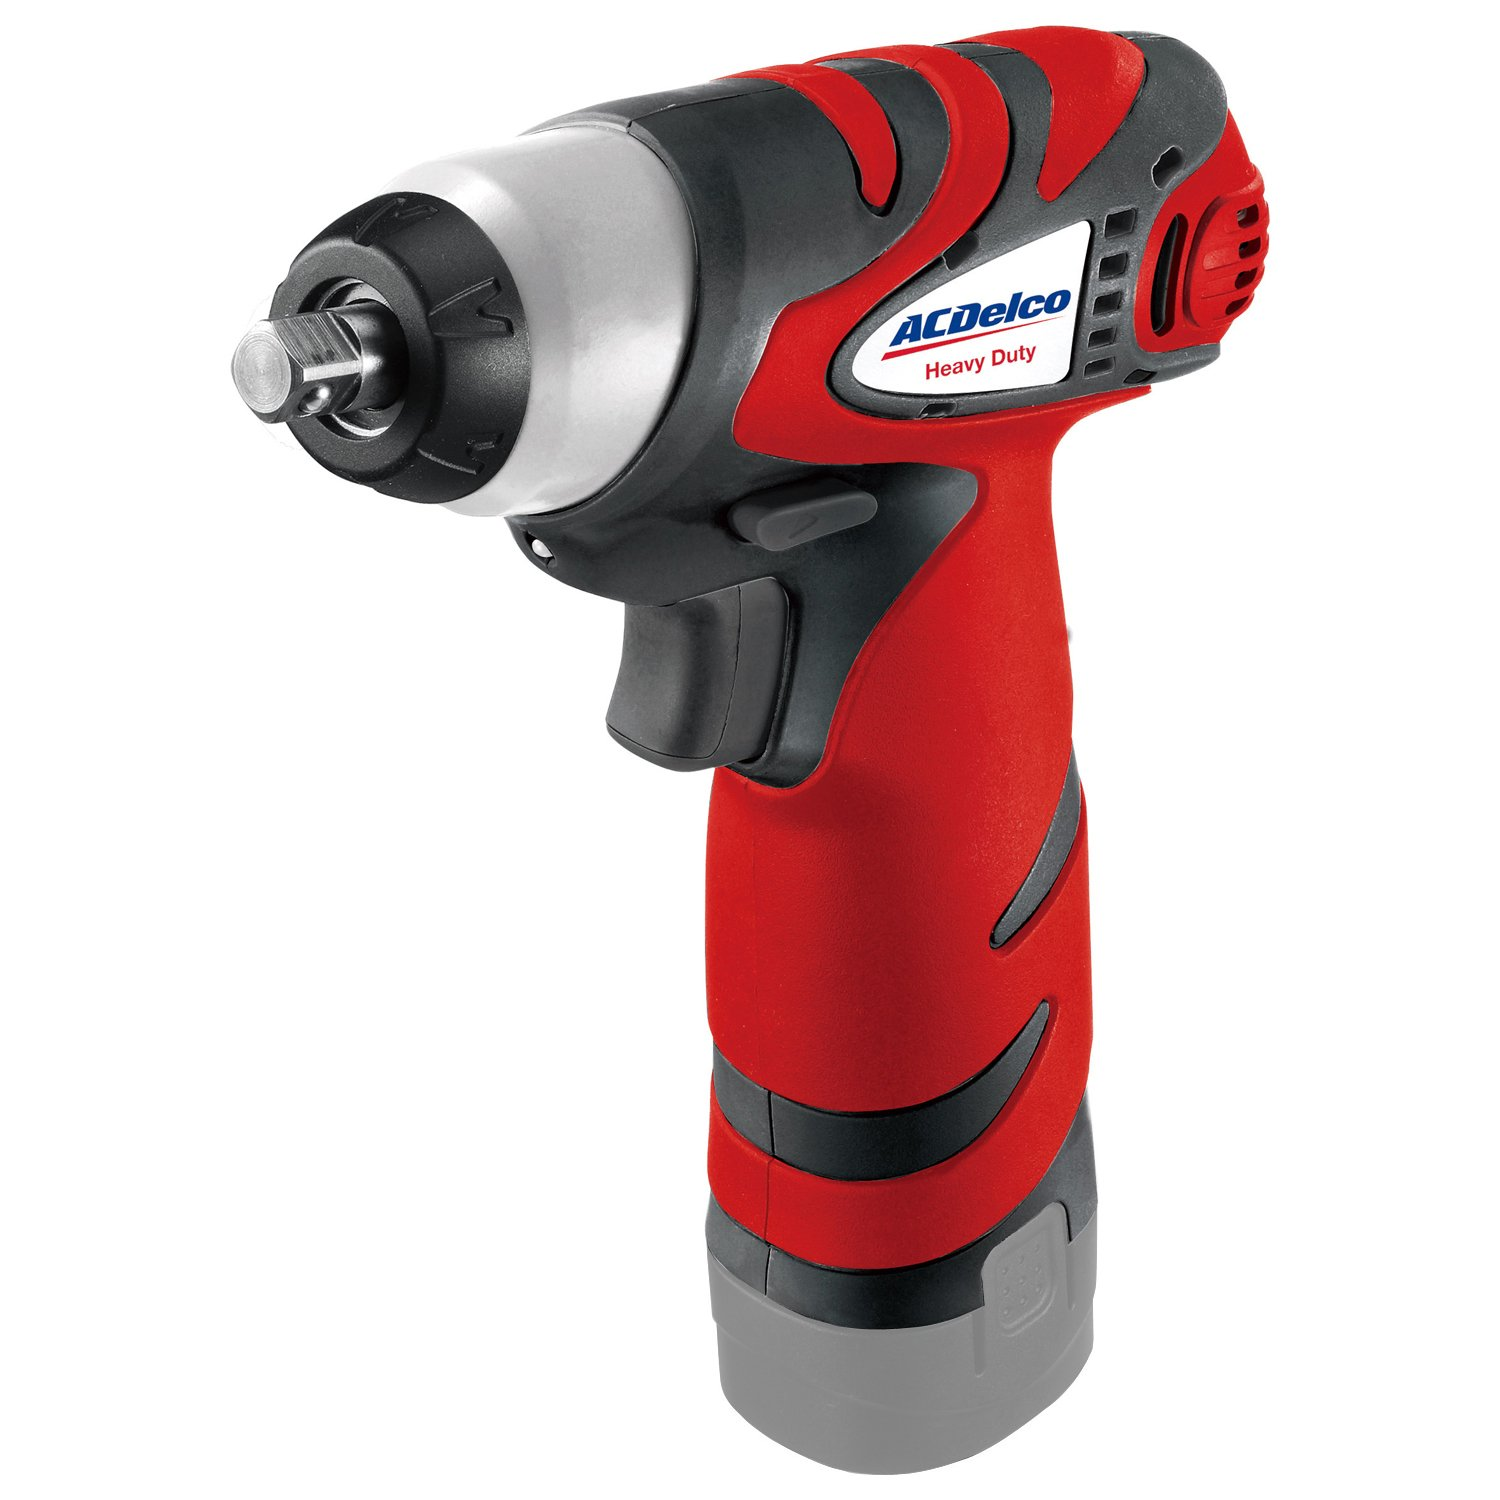 ACDelco ARI810T Li-ion 8V 3/8-inch Impact Wrench, 75 ft-lbs - Bare Tool